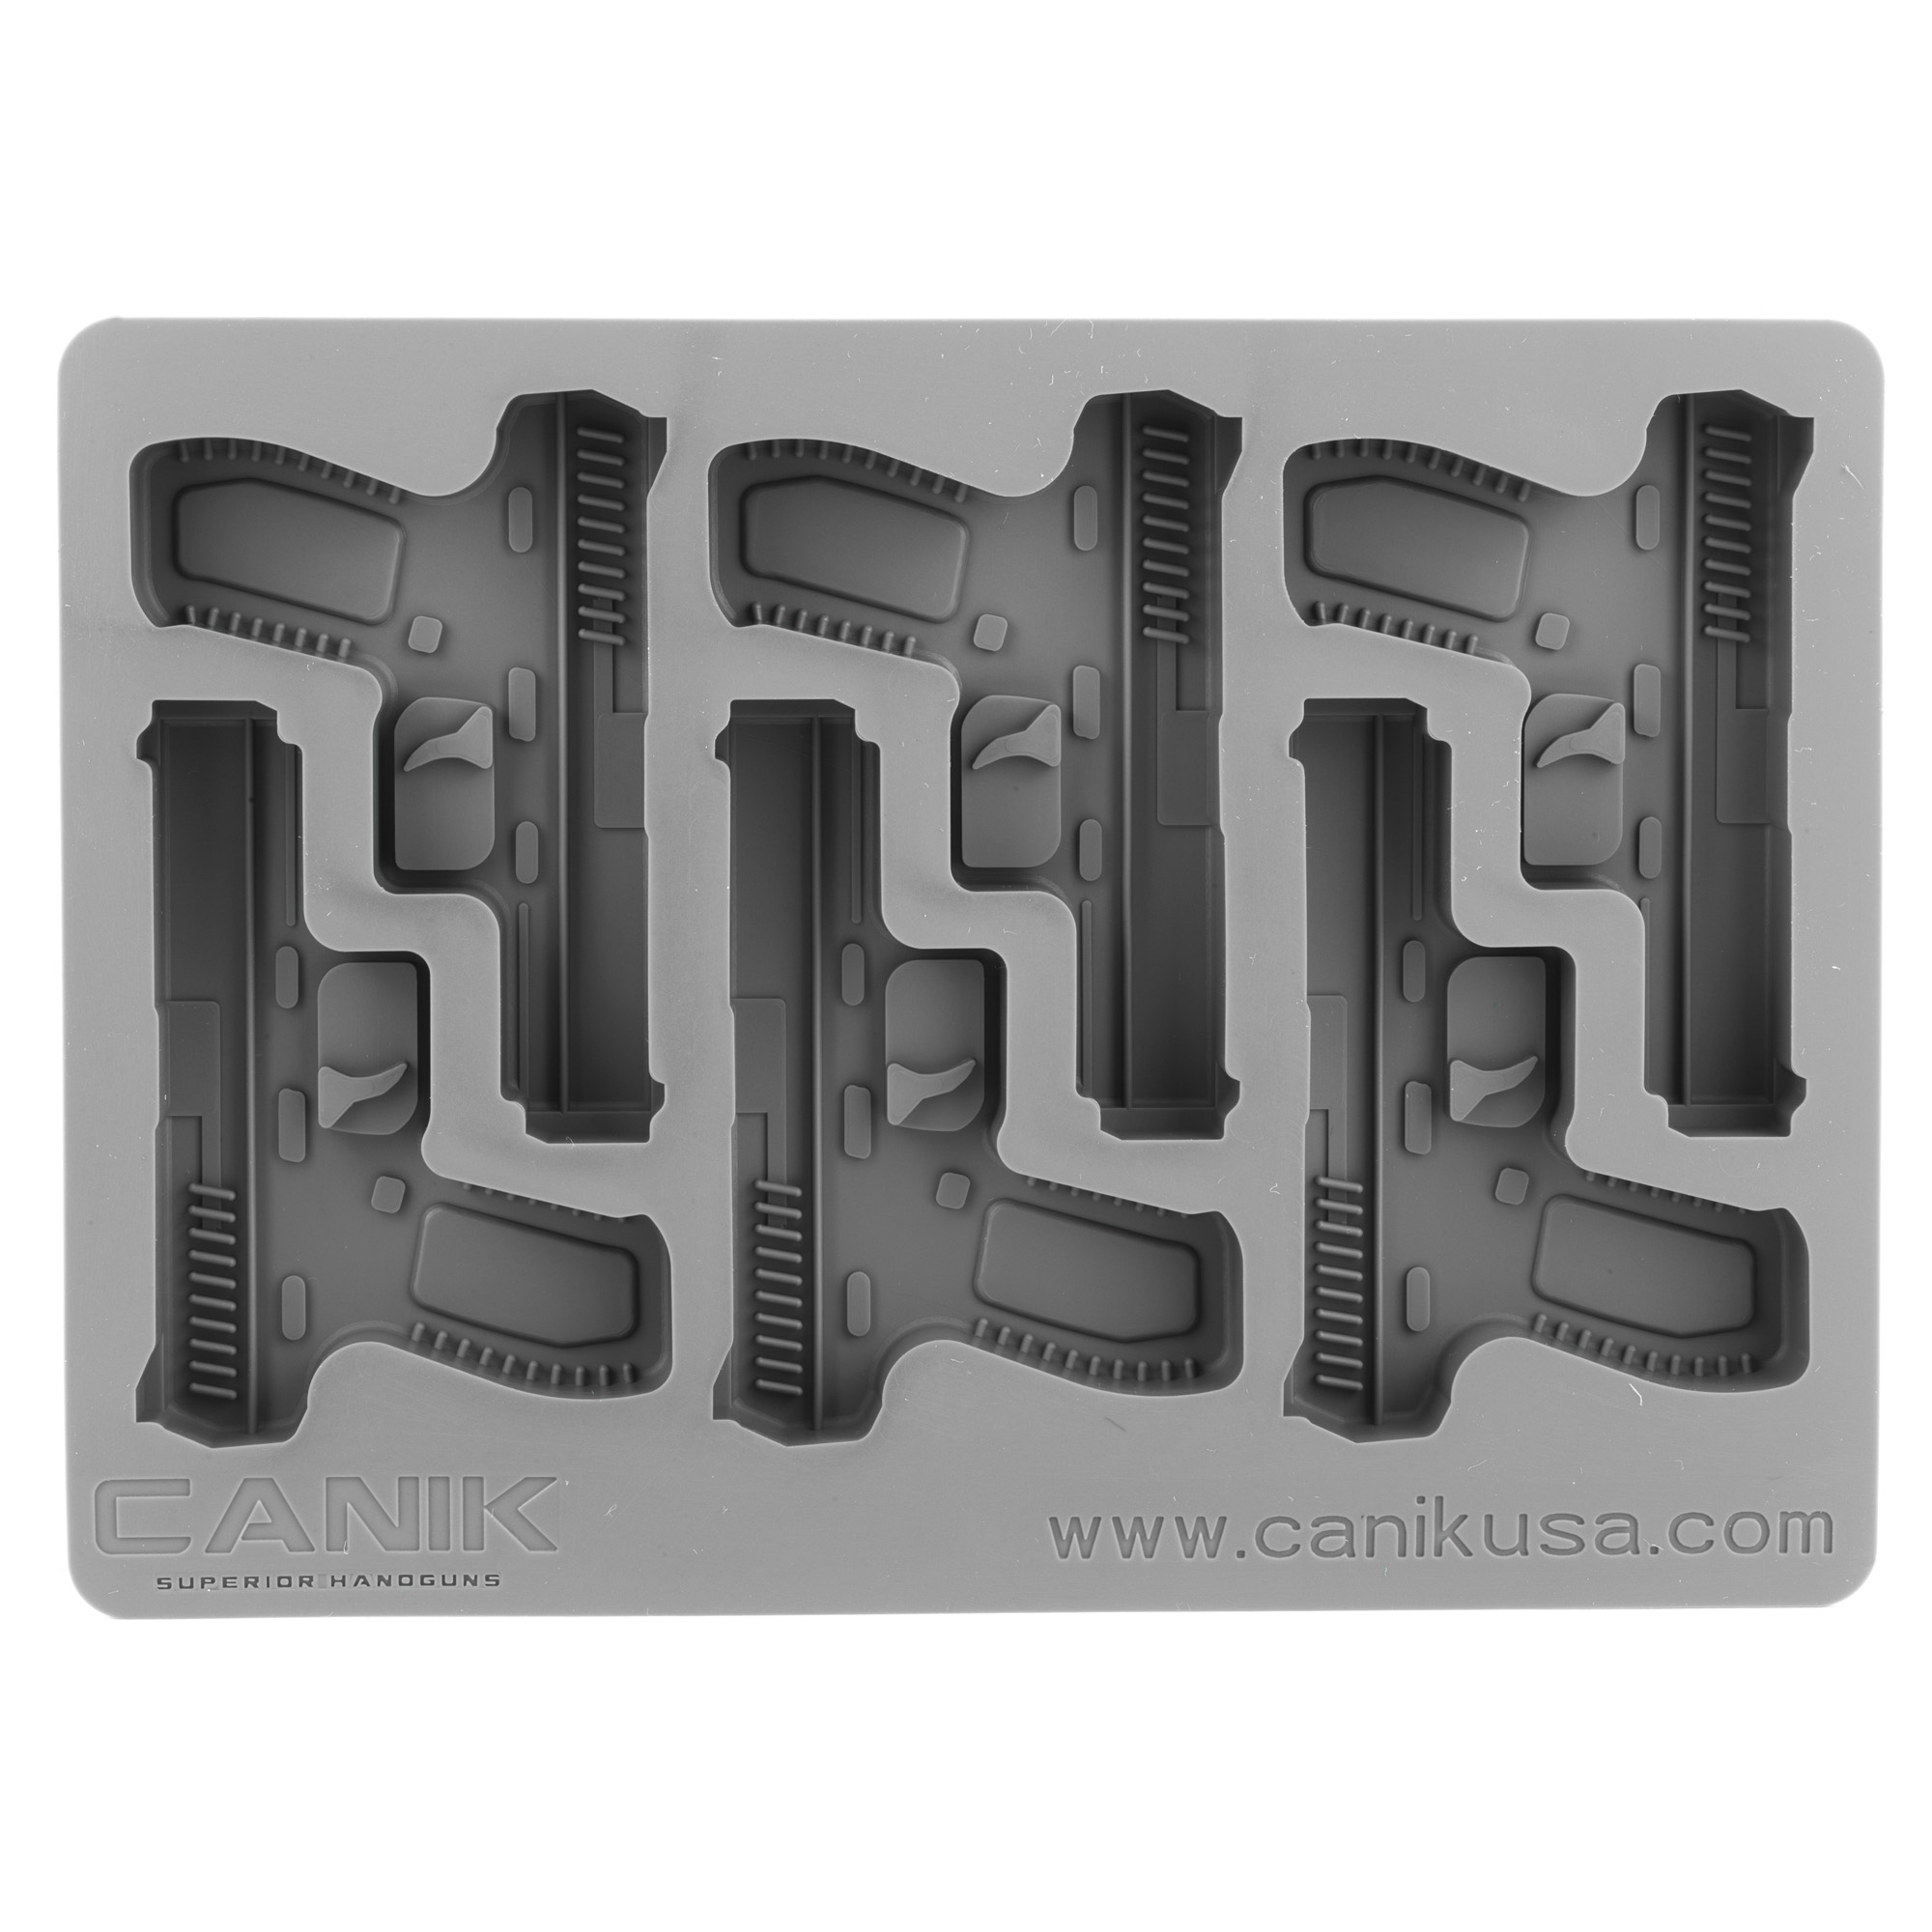 This custom molded ice cube tray from Century Arms allows you to show off your support for the TP-9 pistol. The ice cube tray is constructed from pure food grade silicone rubber and is designed to last for years.